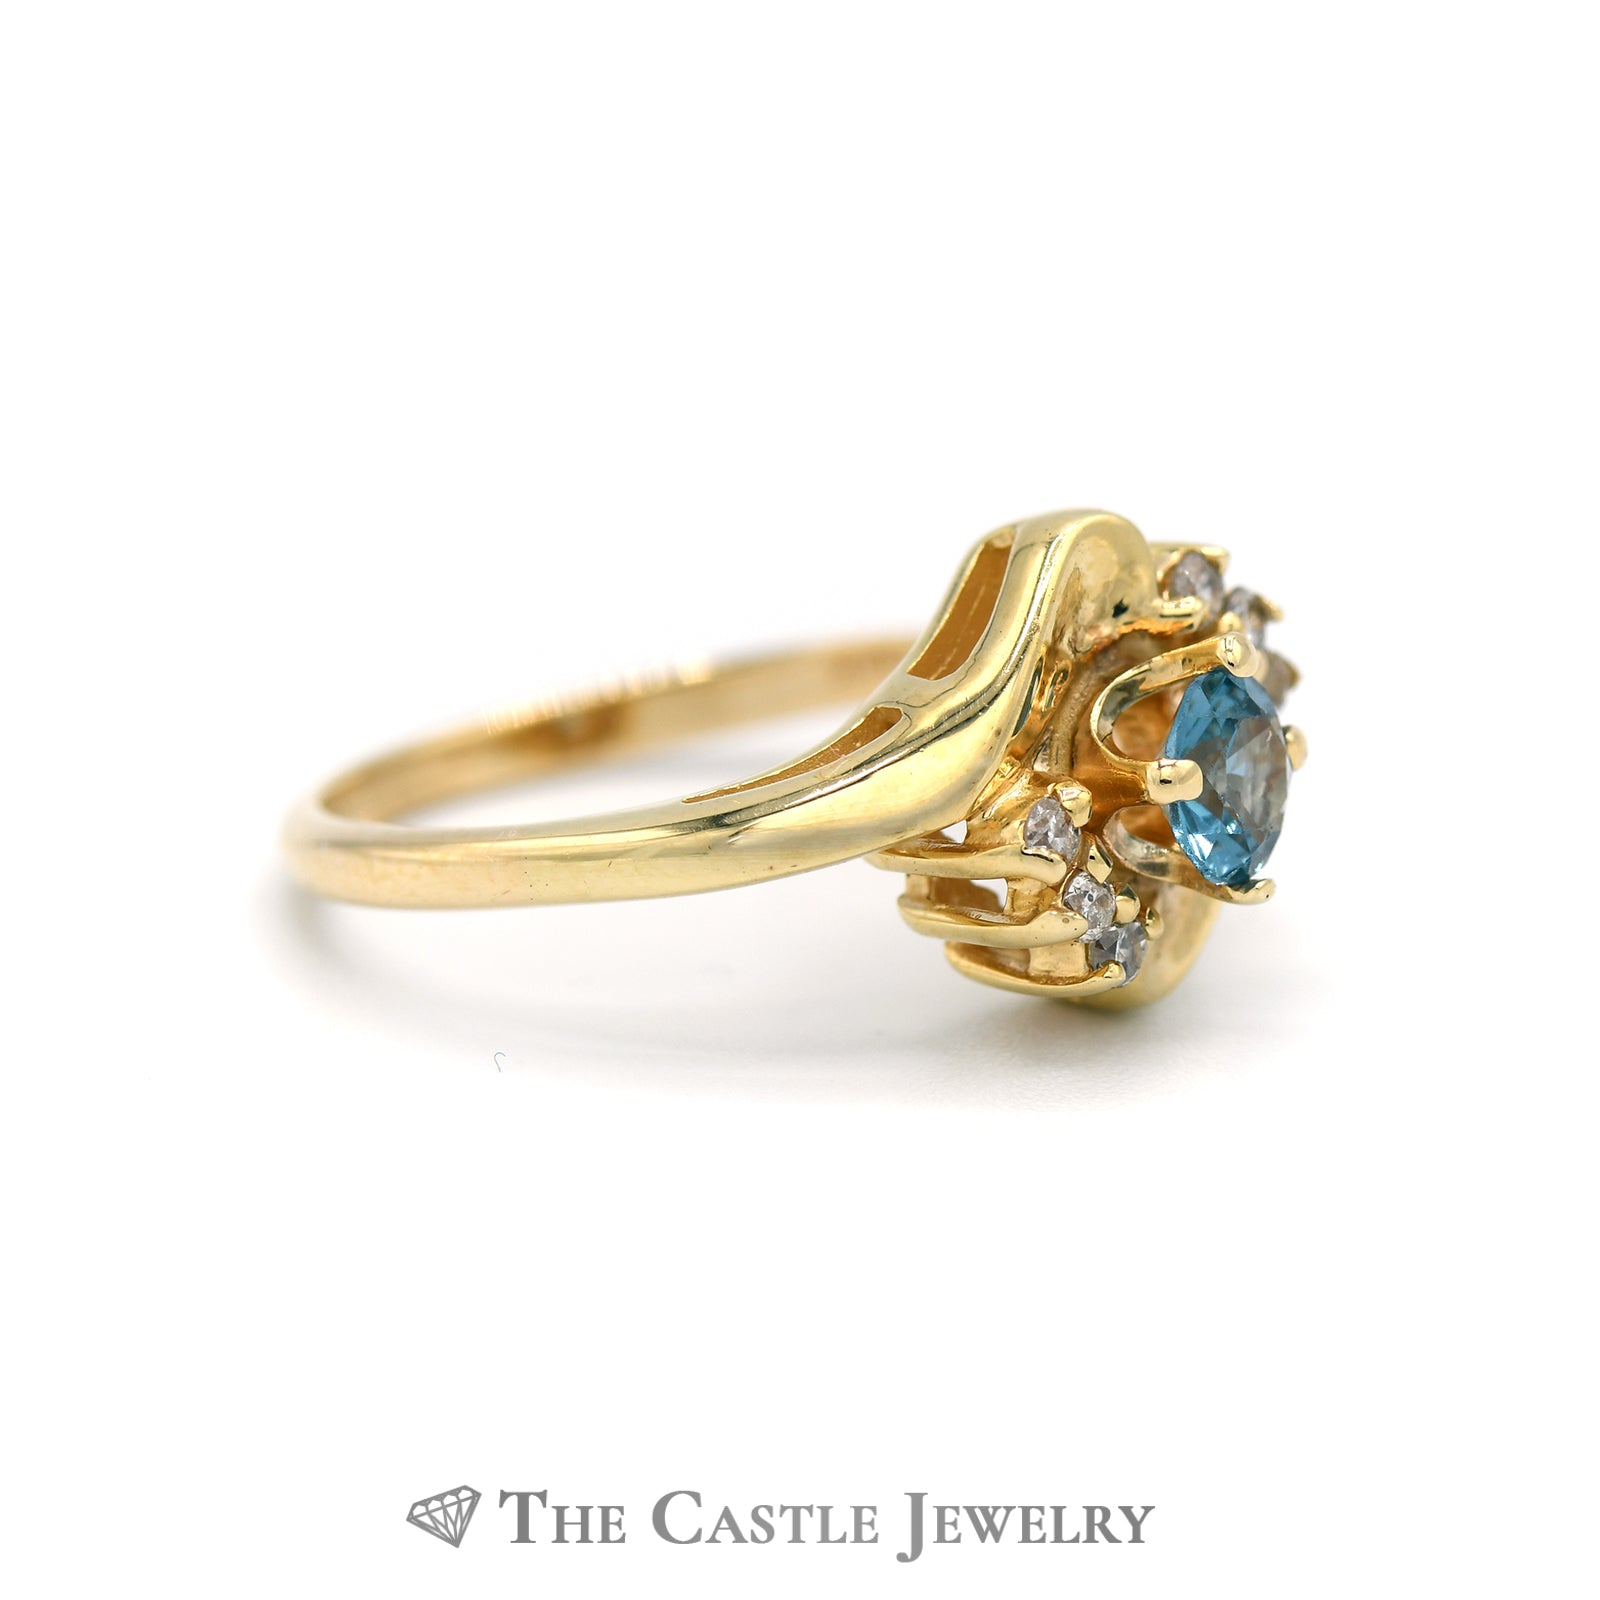 Lovely London Topaz Ring with Diamond Accents in 14K Yellow Gold-2